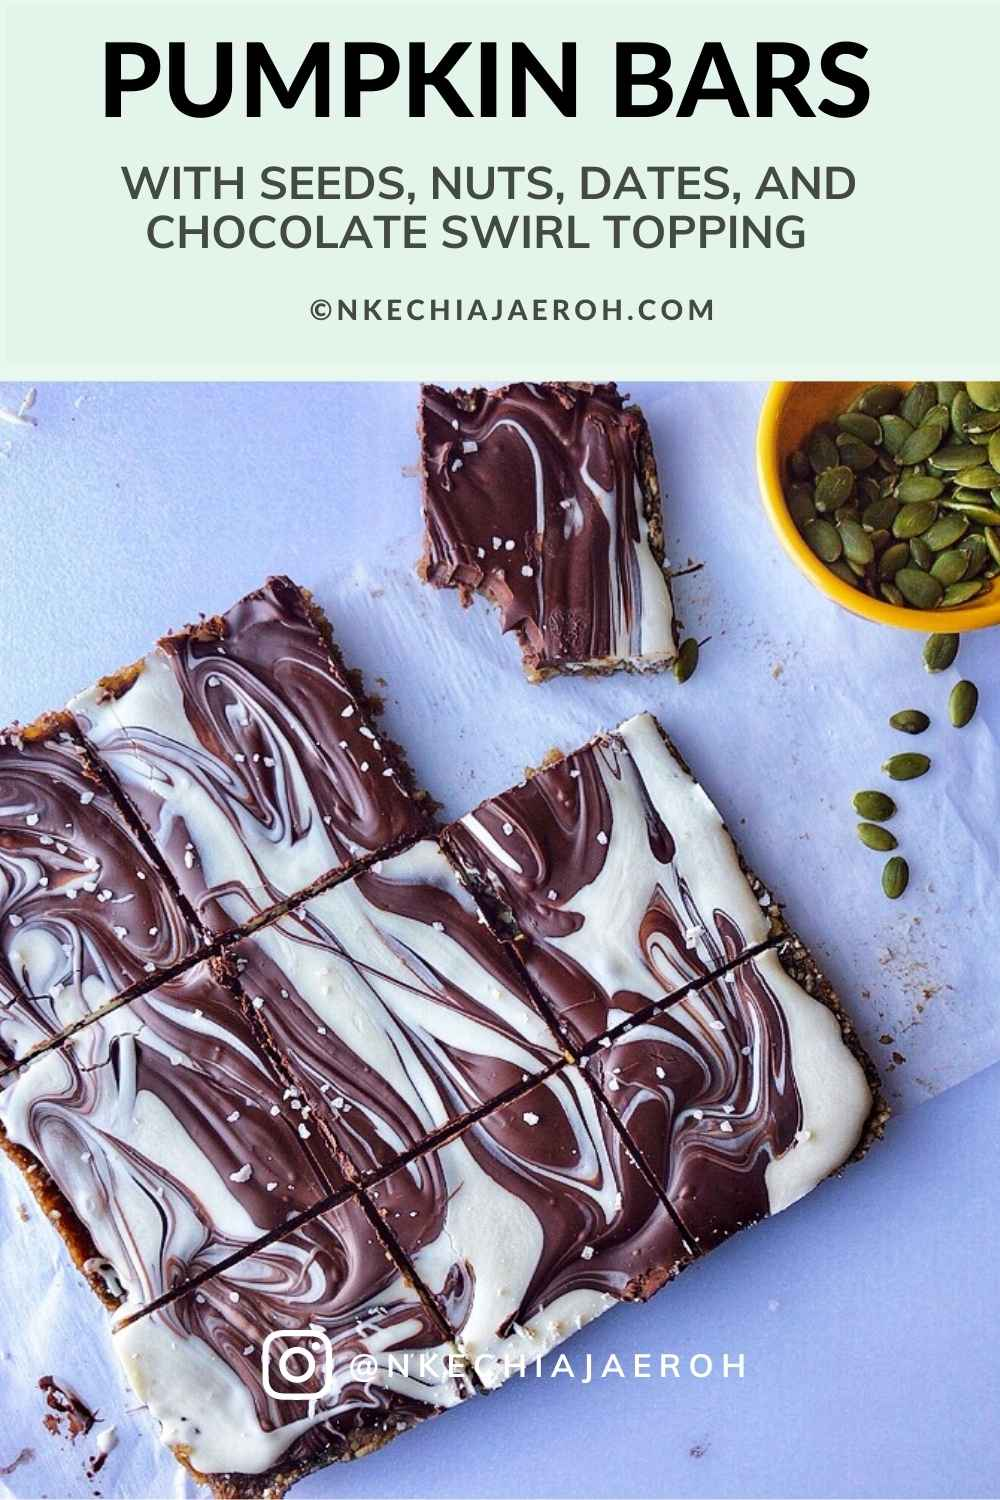 These healthy pumpkin seed bars made with pumpkin seeds, sunflower seeds, coconut flakes, dates, pink salt, and then topped with a chocolate swirl will make your day. These bars are gluten-free, grain-free, and refined sugar-free, as well as a no-bake! Make sure to make these pumpkin bars during thanksgiving and other occasions! Serve pumpkin (seed) bars as healthy snacks, dessert; make a lot, and freeze the remaining. #Pumpkin #Pumpkinbars #pumpkinseeds #sugarfree #grainfree #glutenfree #pumpkinrecipes